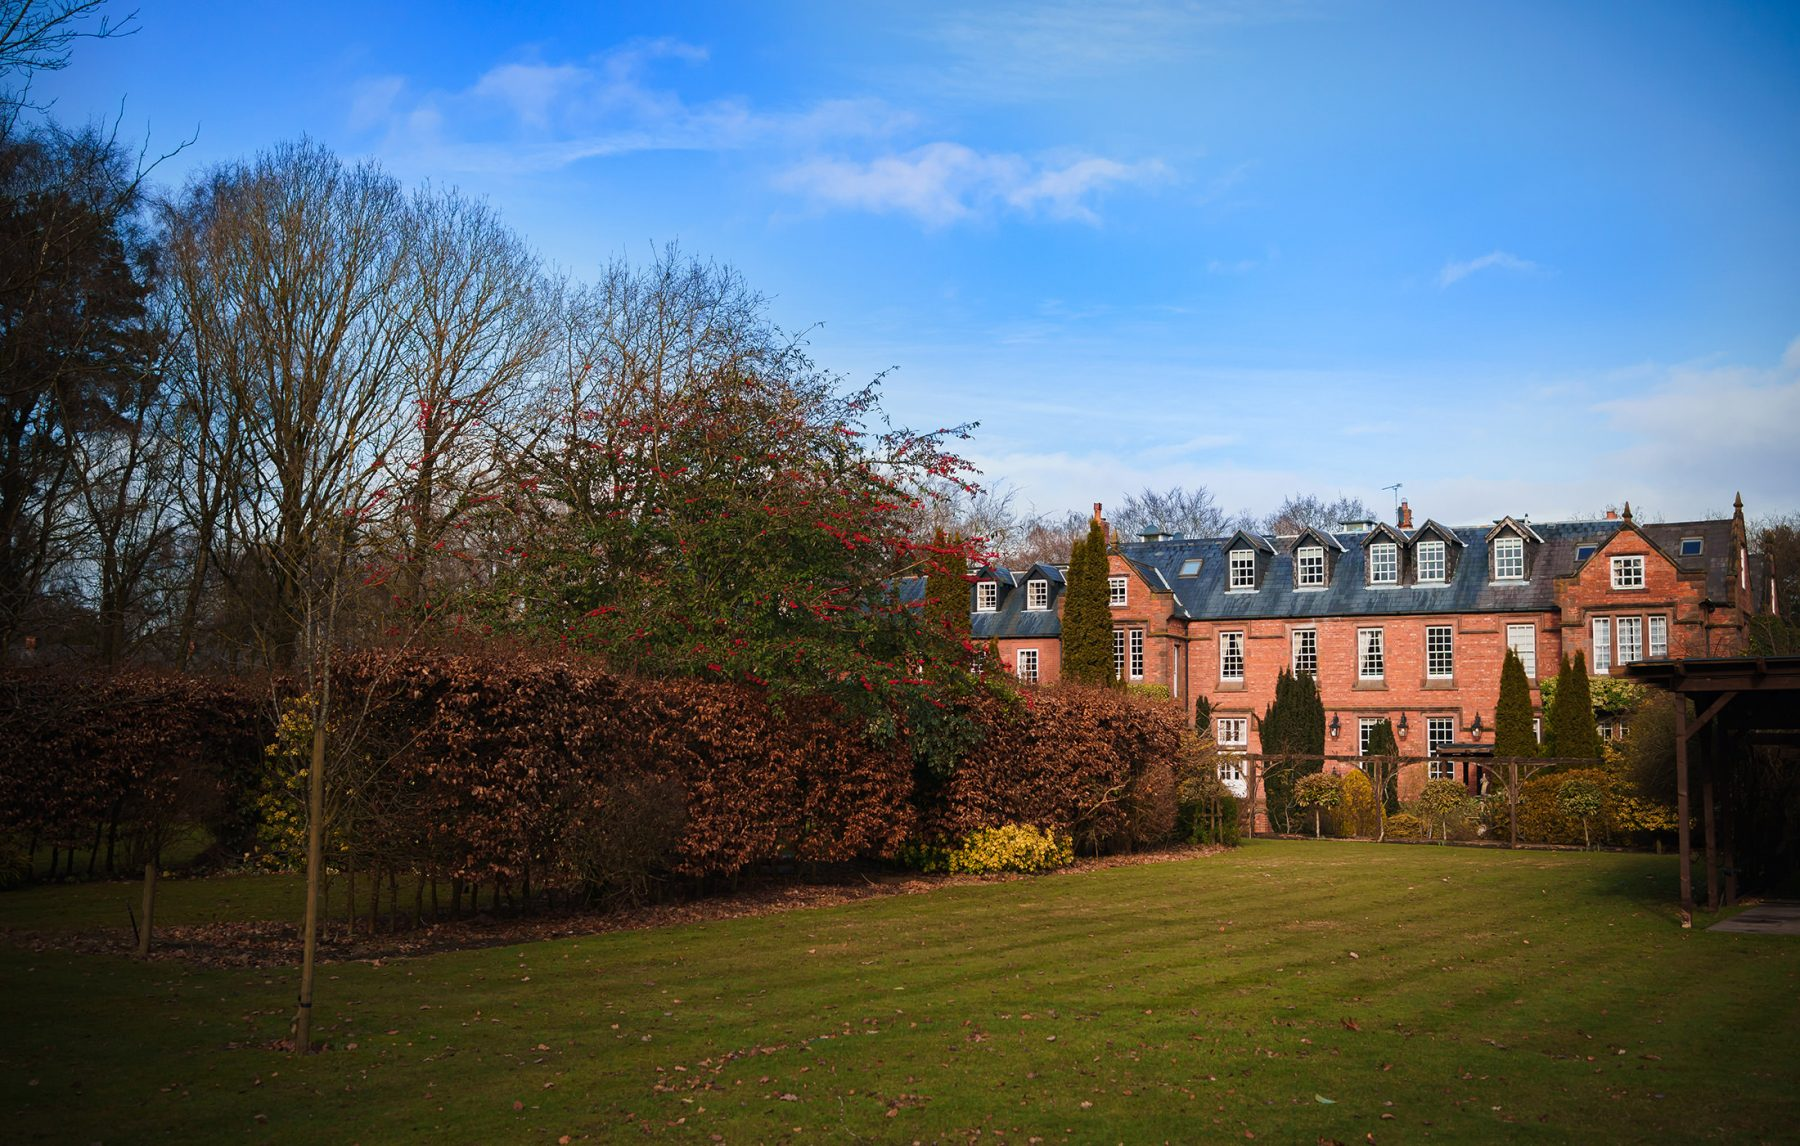 A picture of the rear of Nunsmere Hall in Cheshire - Country House weddings at Nunsmere Hall